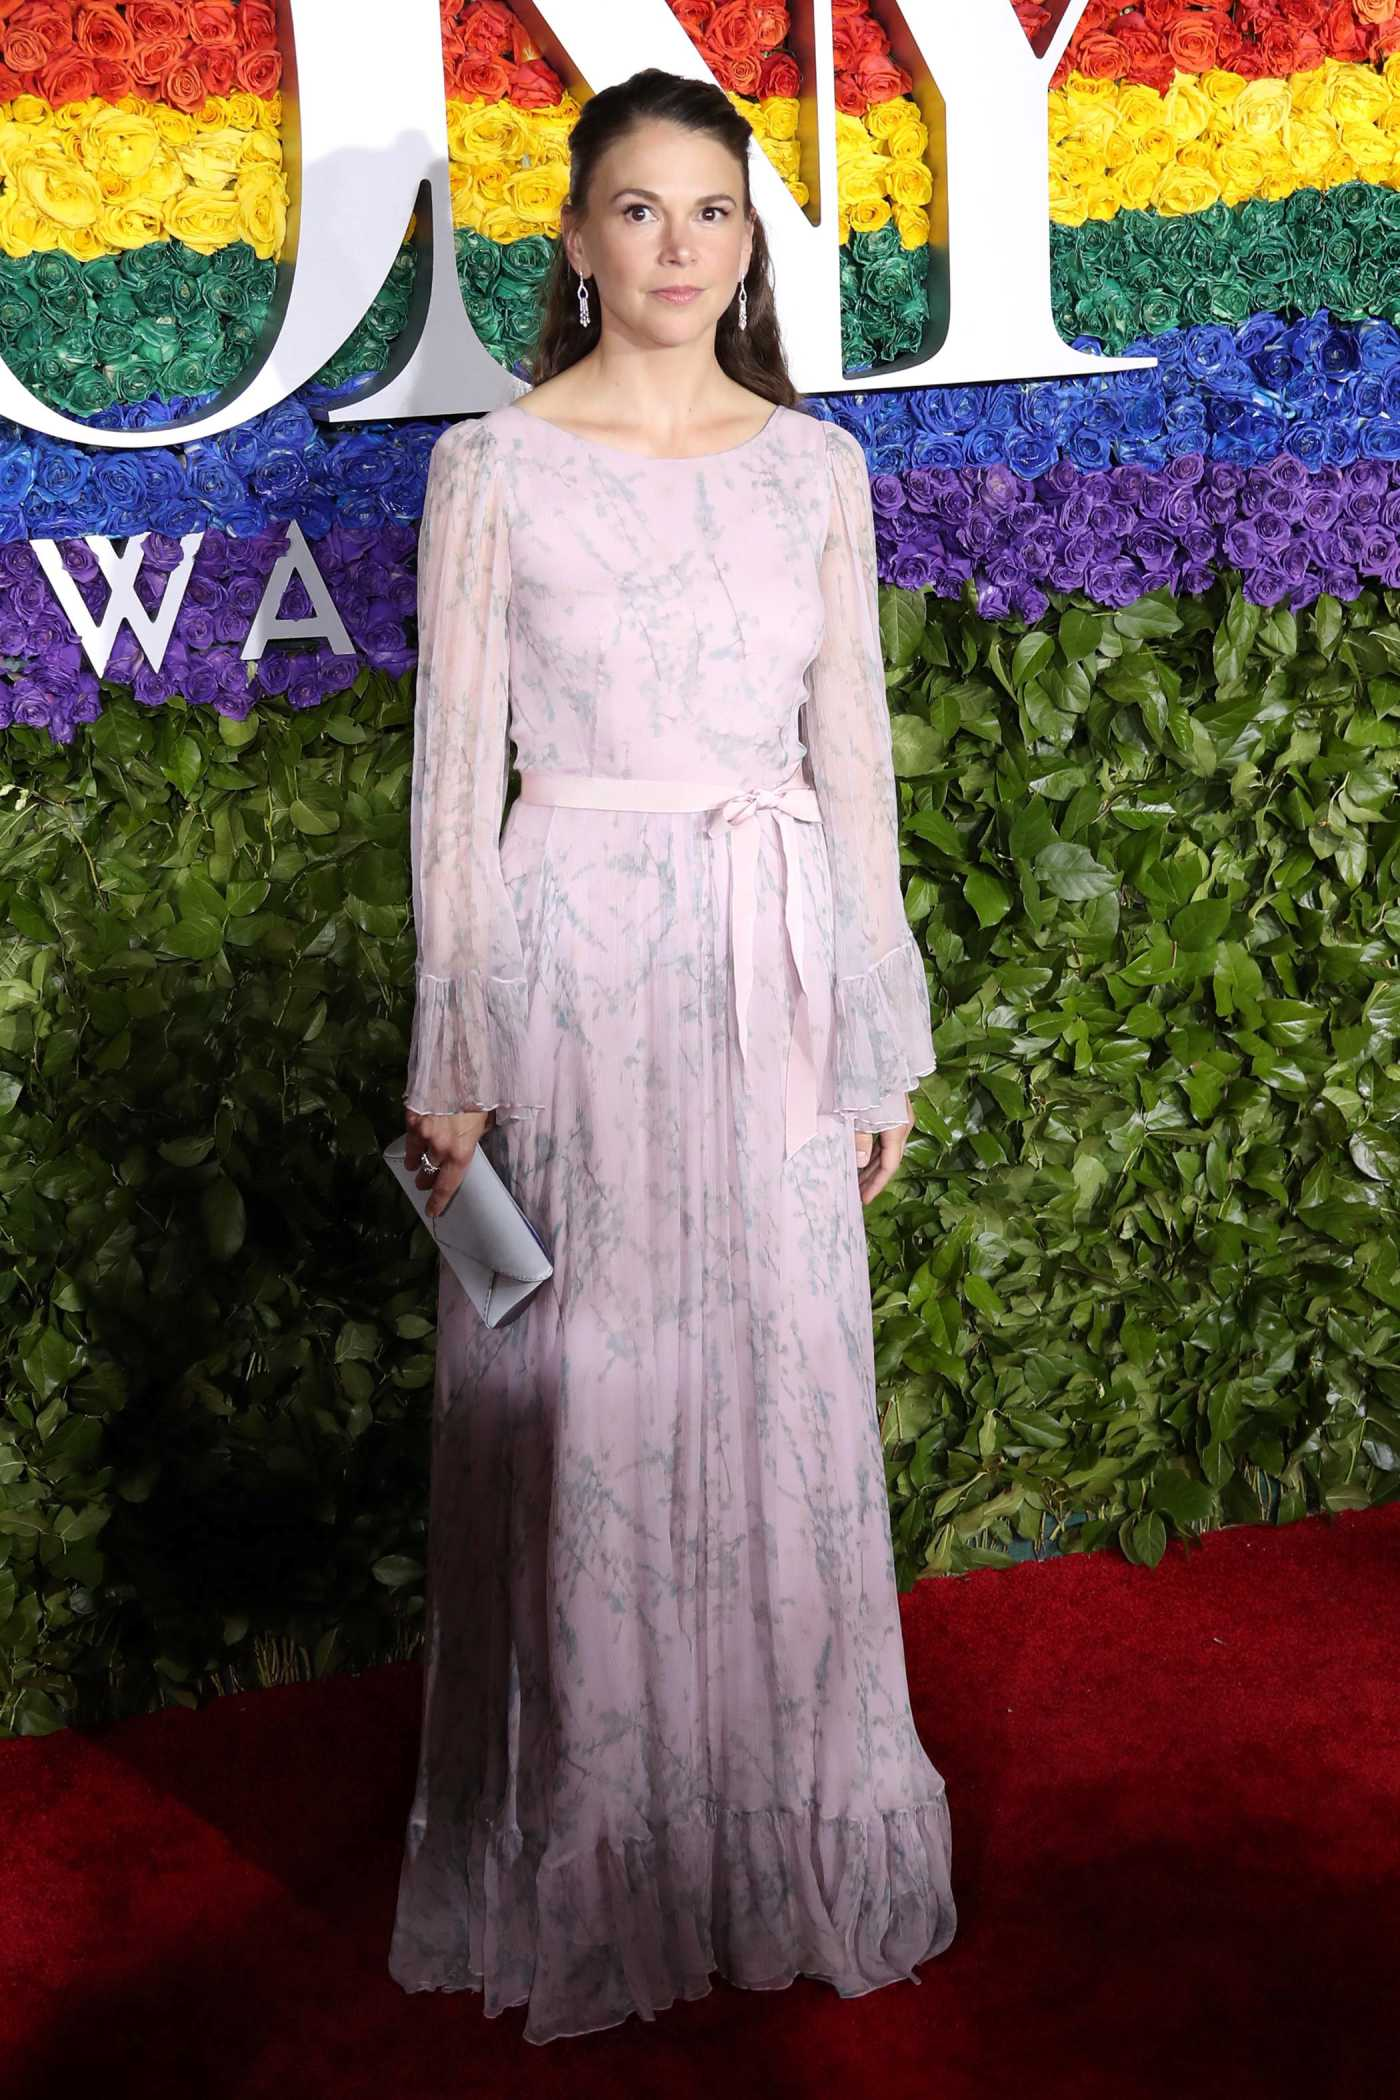 Sutton Foster Attends the 73rd Annual Tony Awards at Radio City Music Hall in New York 06/09/2019